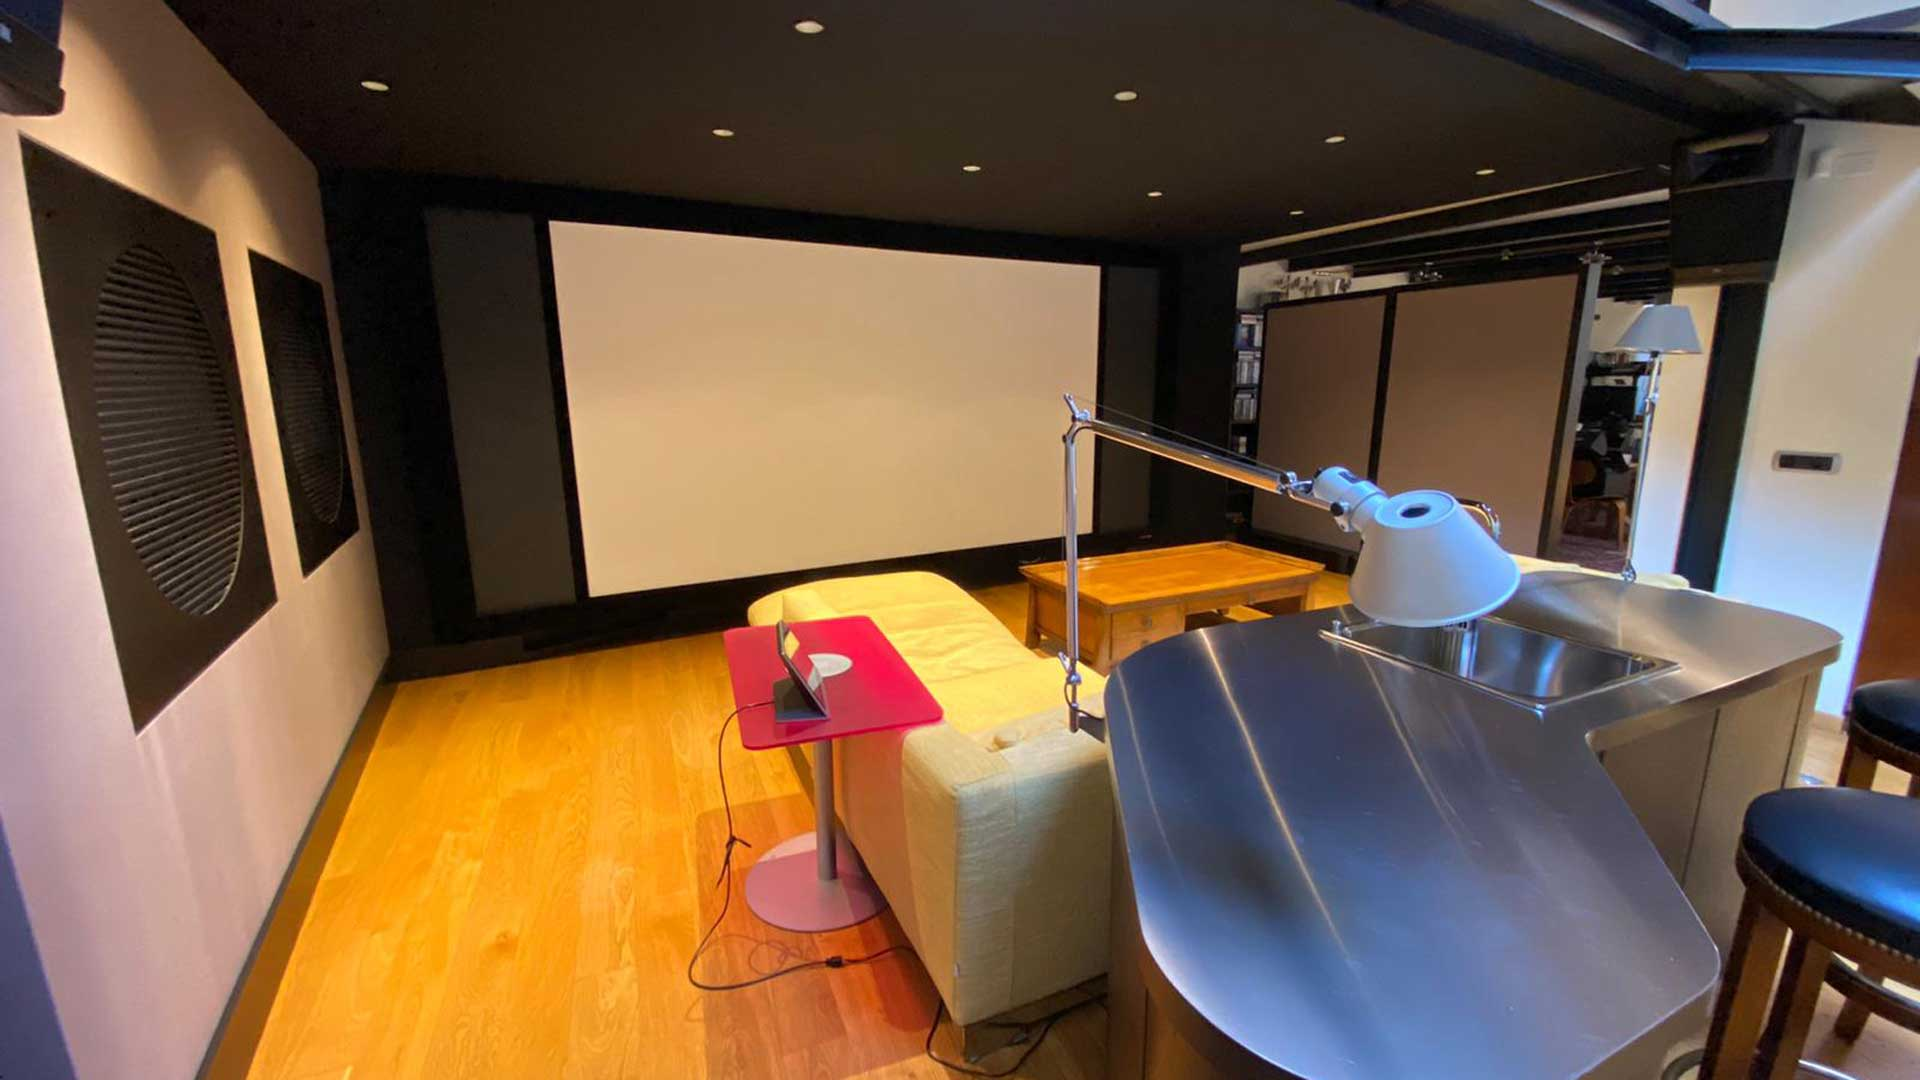 2_home_cinema_proaudio_construction